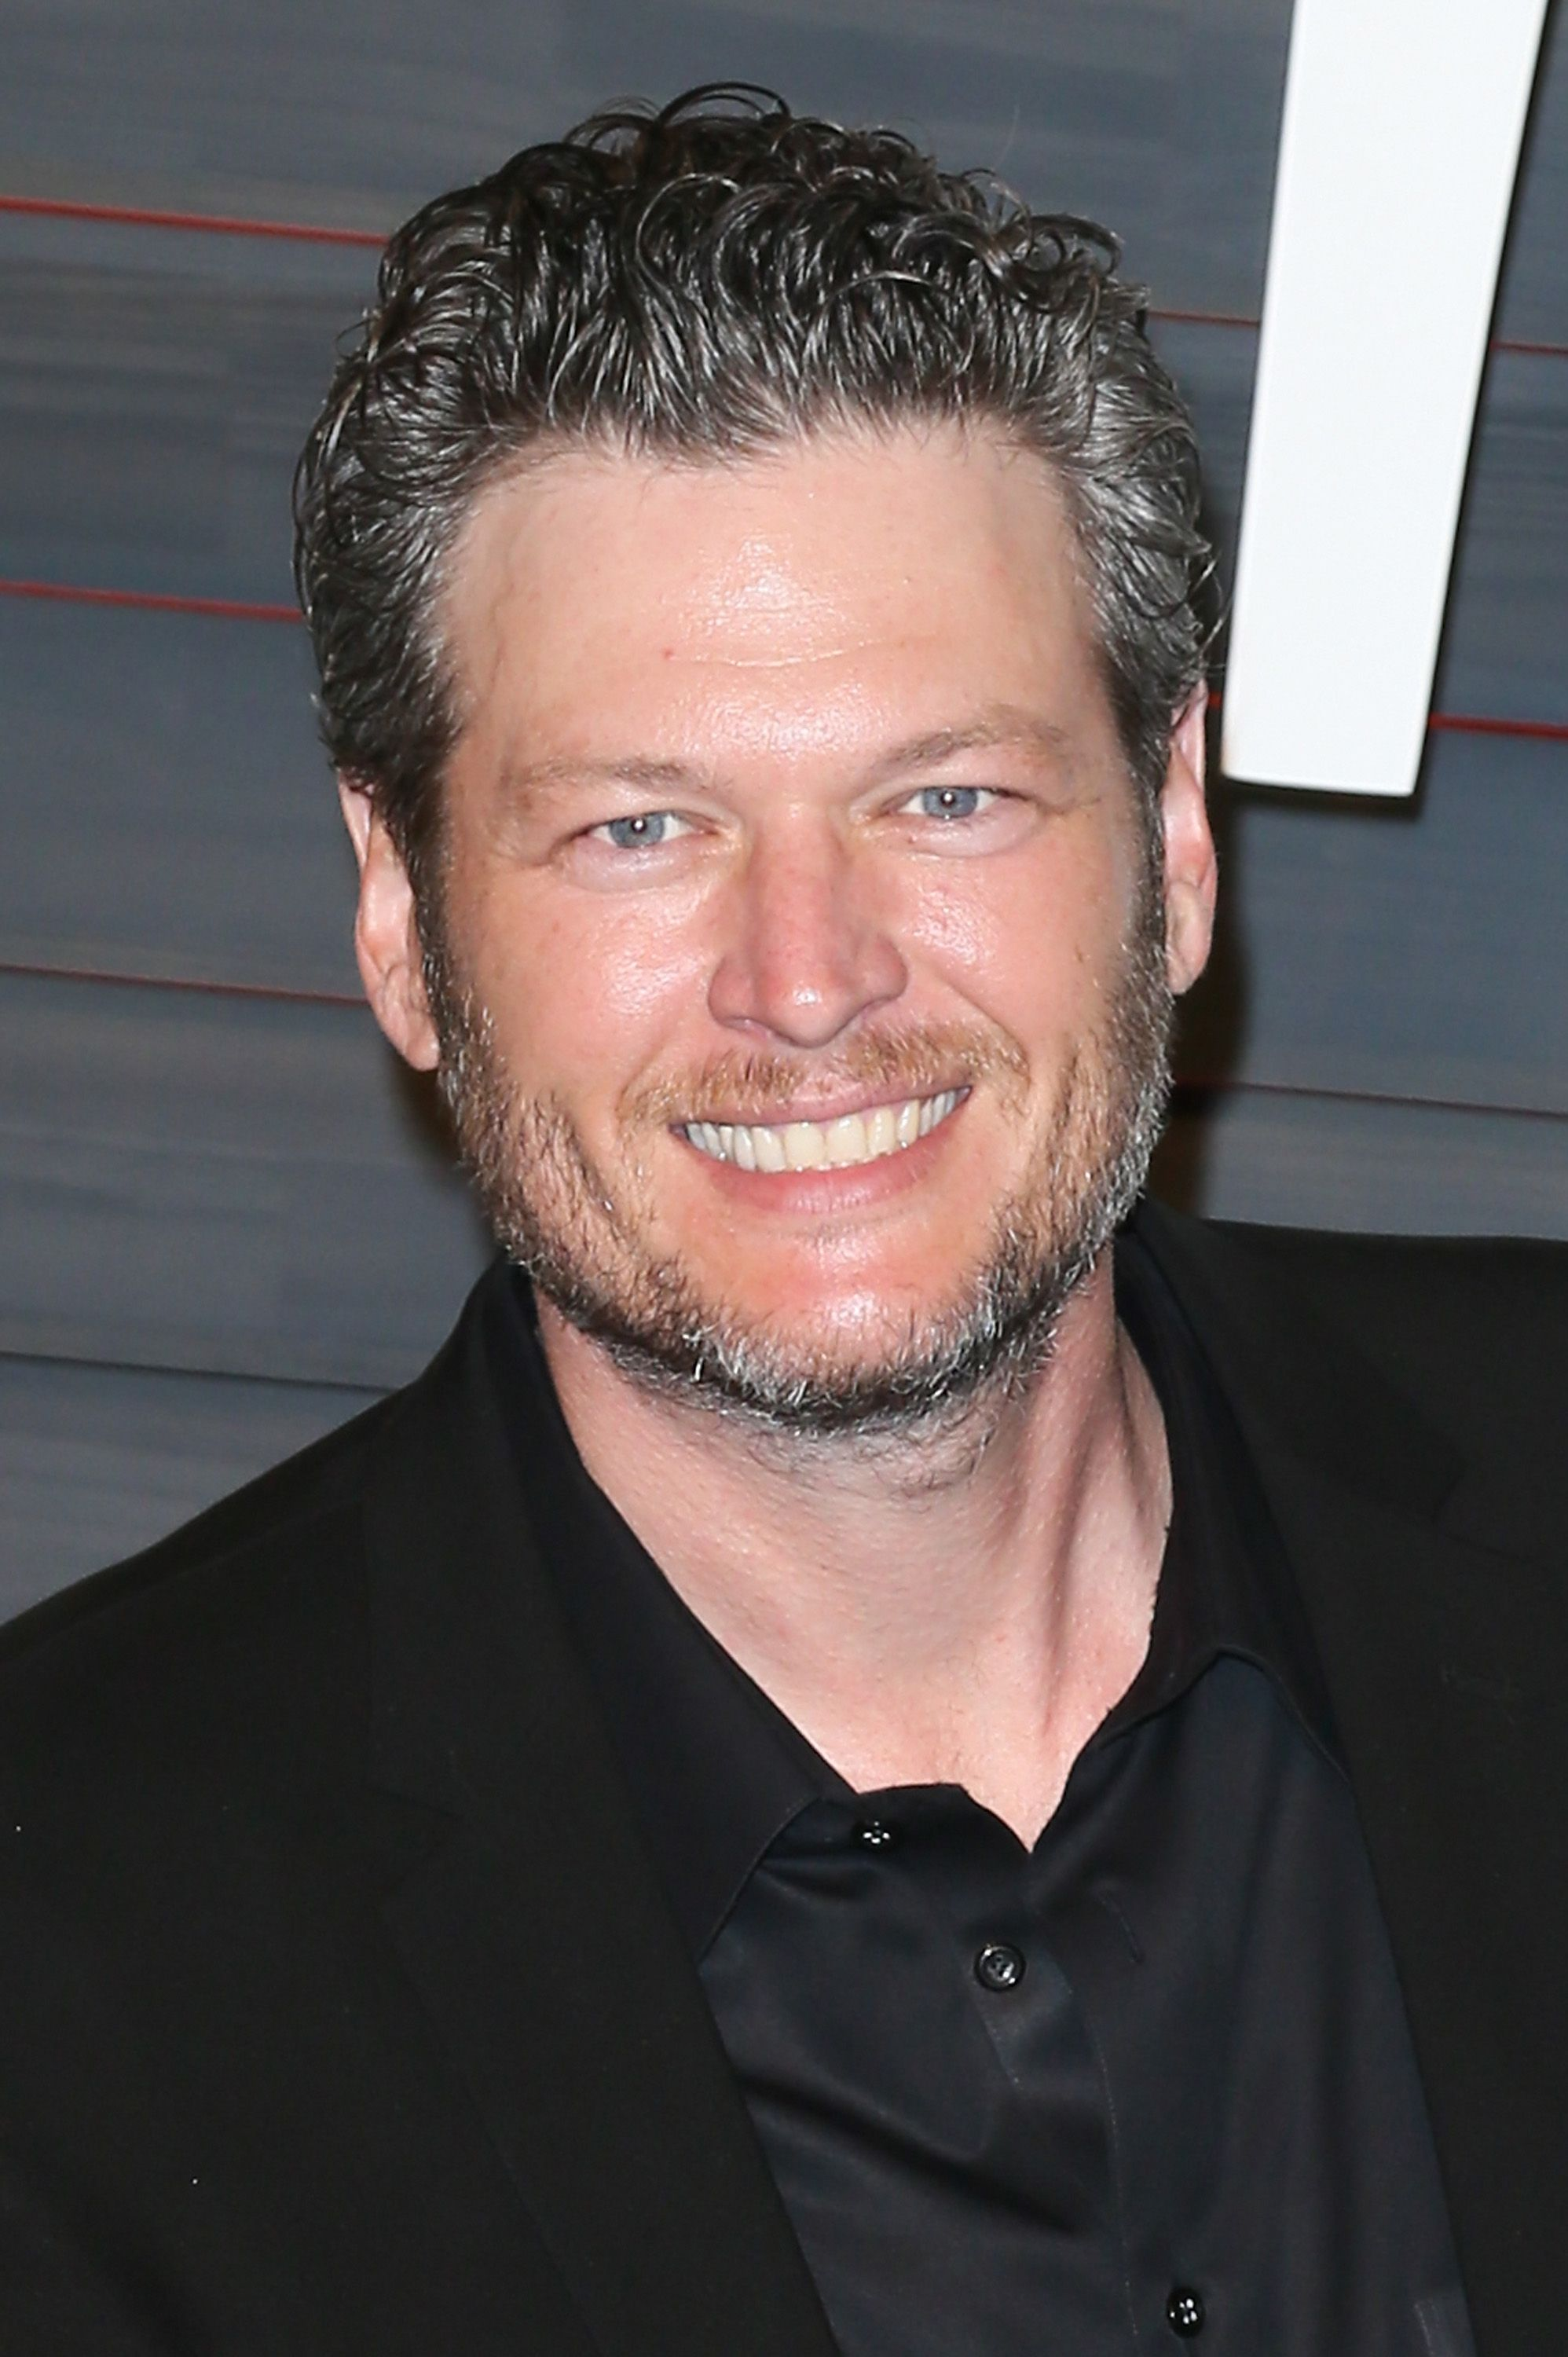 Blake Shelton arrives at the 2016 Vanity Fair Oscar Party Hosted by Graydon Carter at the Wallis Annenberg Center for the Performing Arts on February 28, 2016 in Beverly Hills, California | Photo: Getty Images